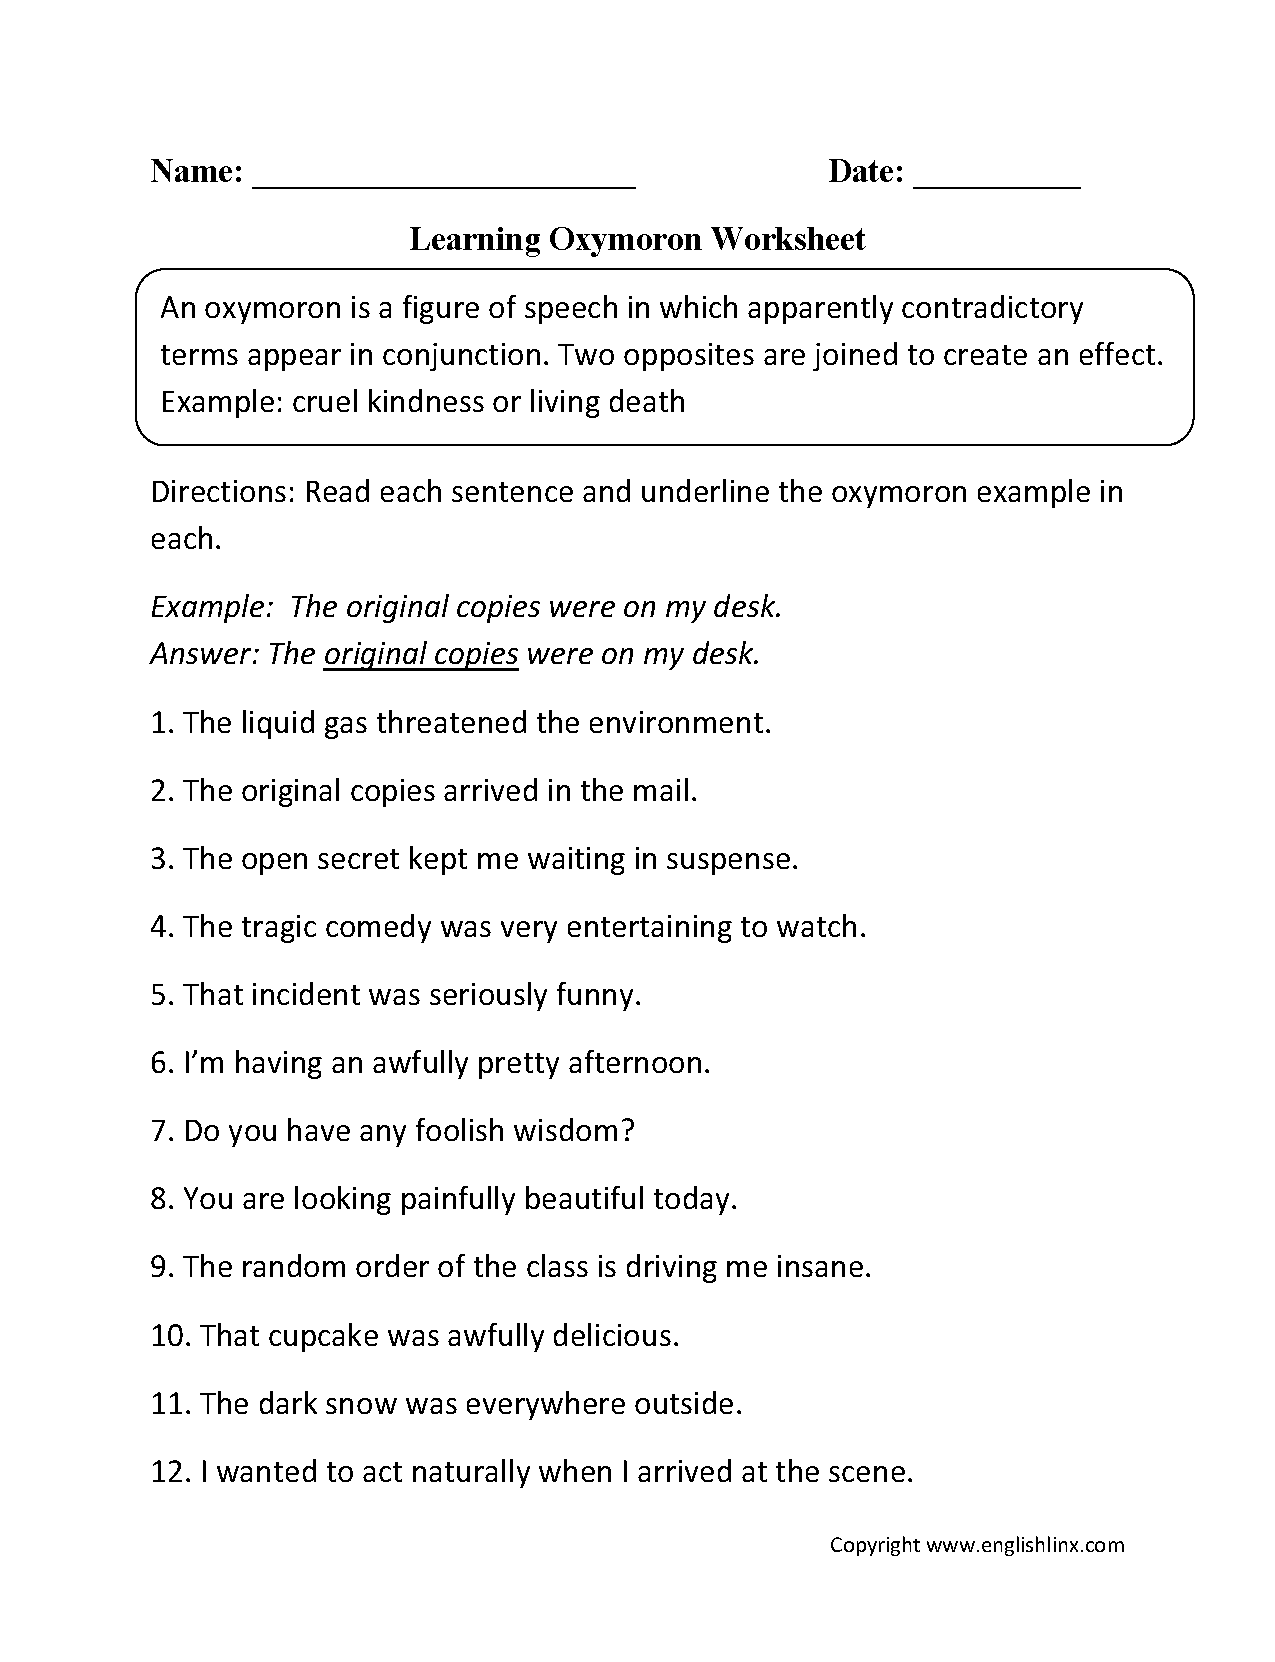 Oxymoron Figurative Language Worksheets Englishlinx Board